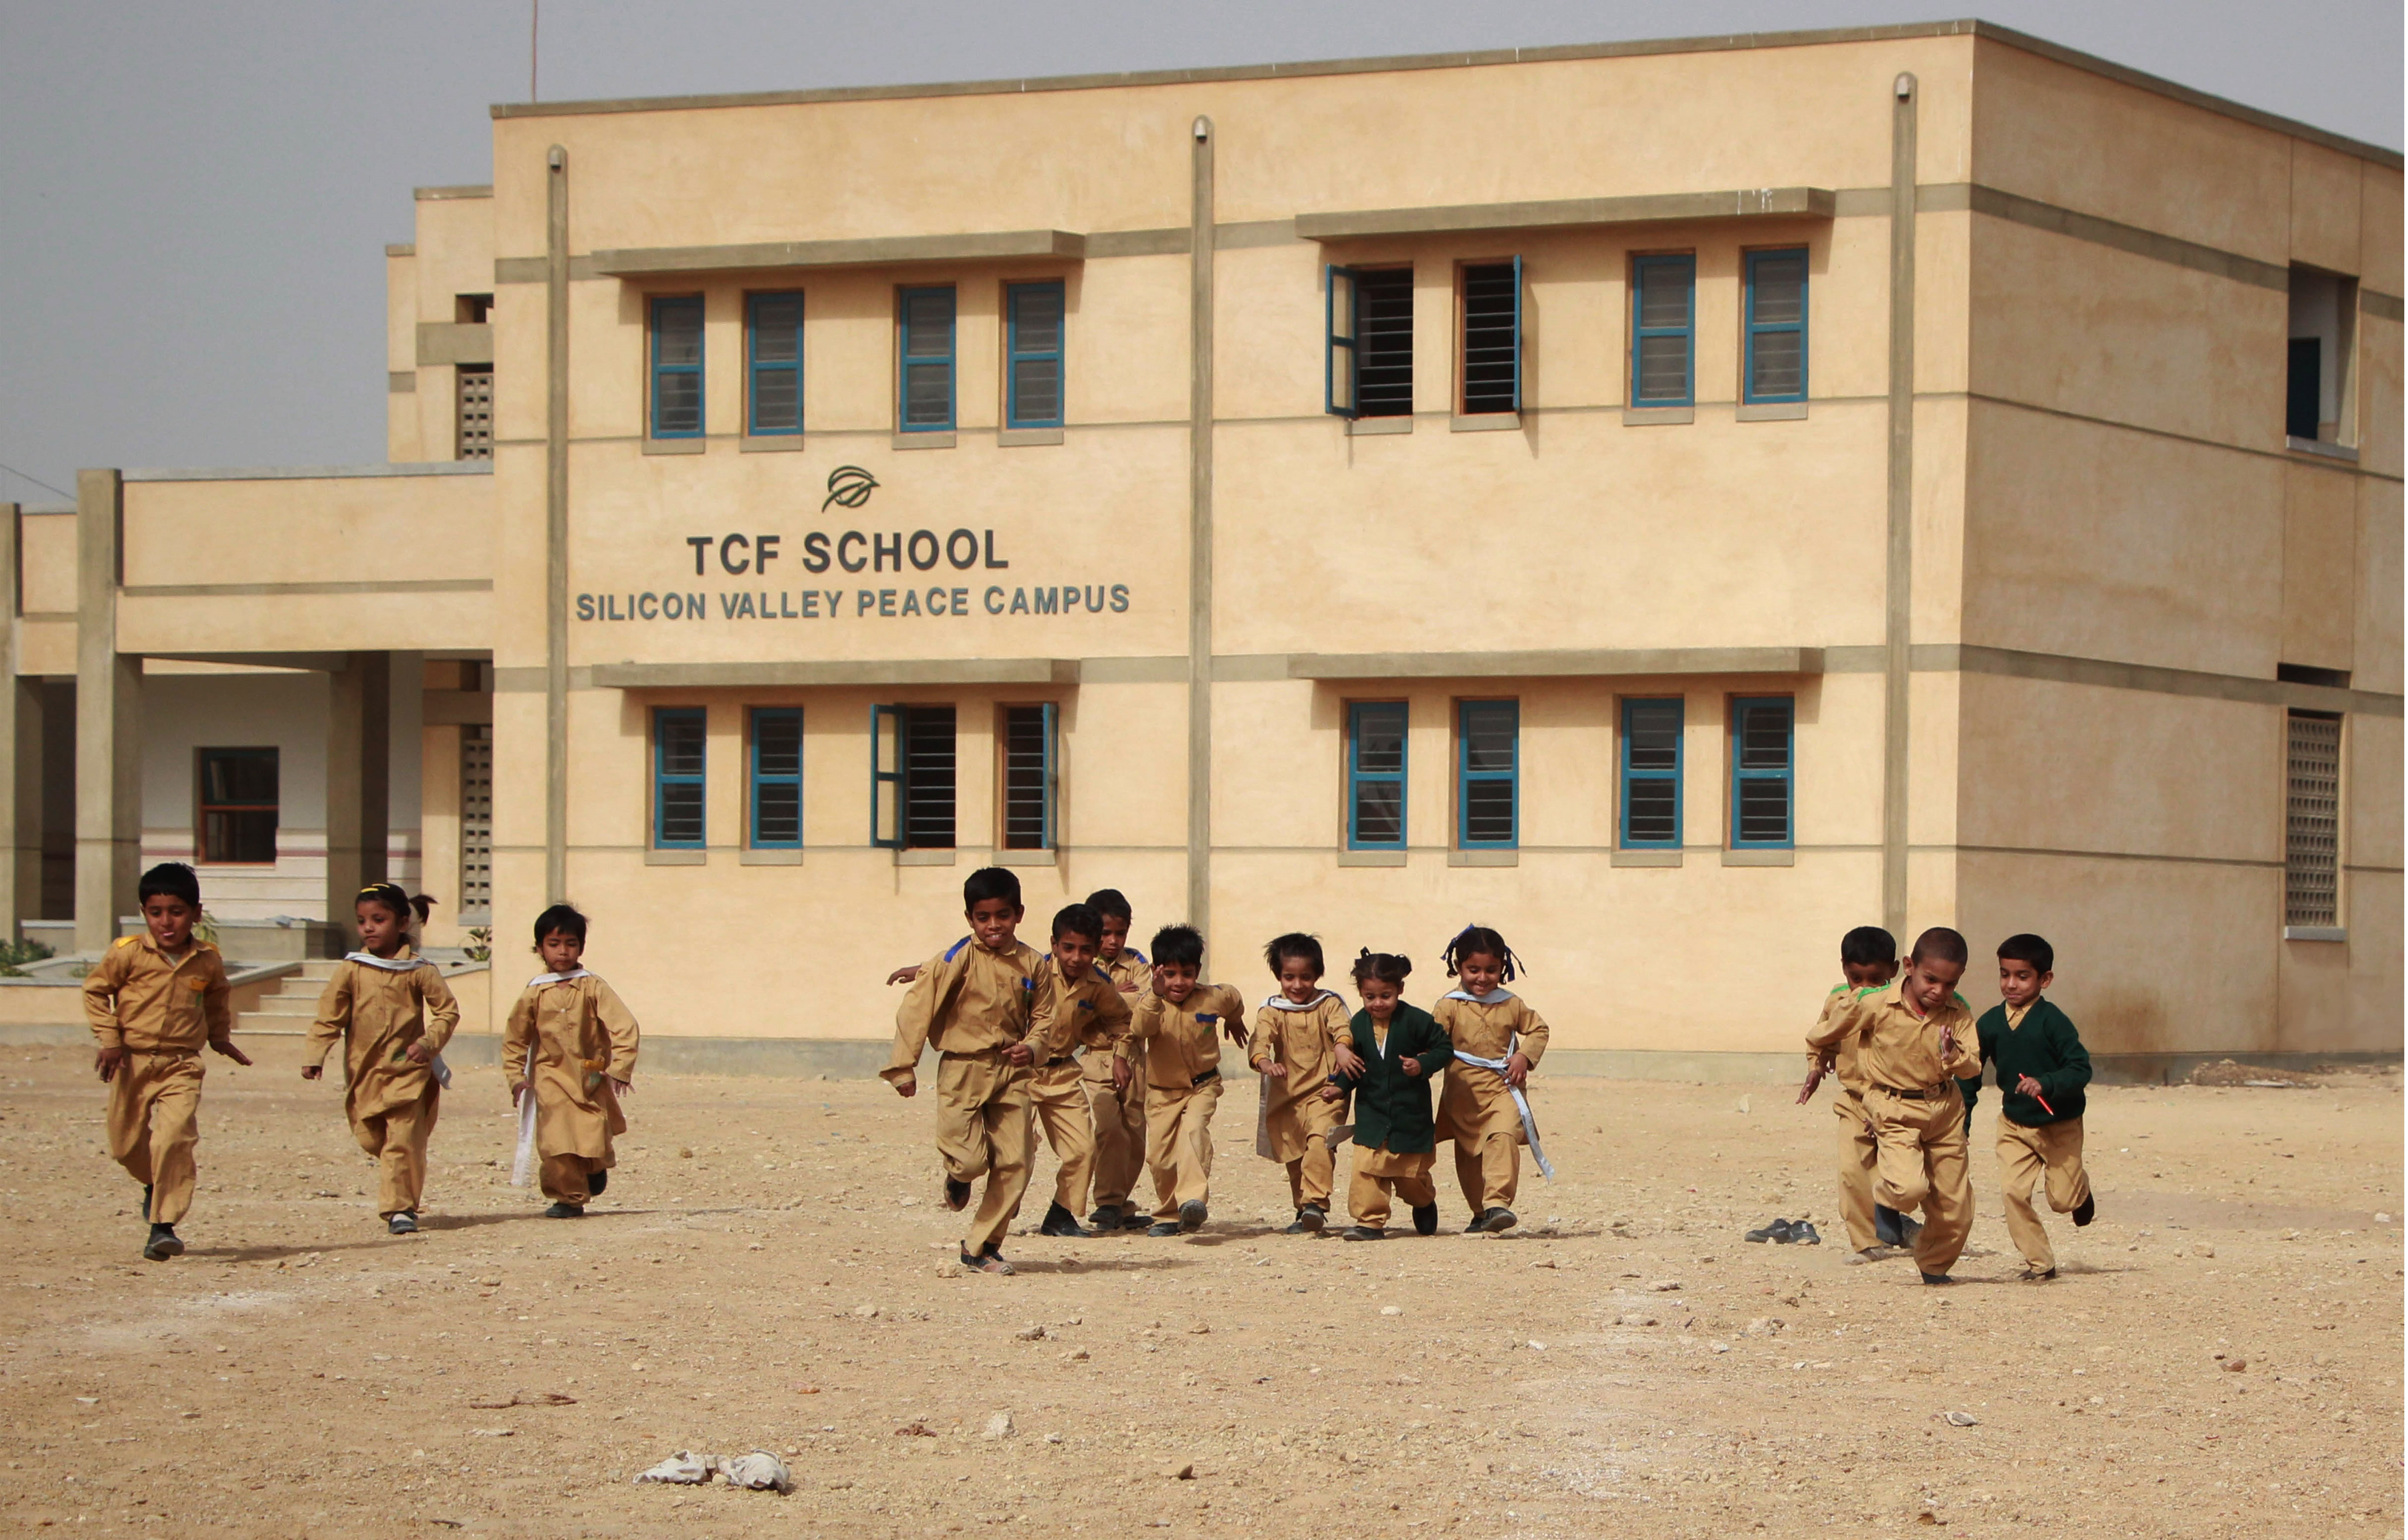 Pakistanis fight extremism through education